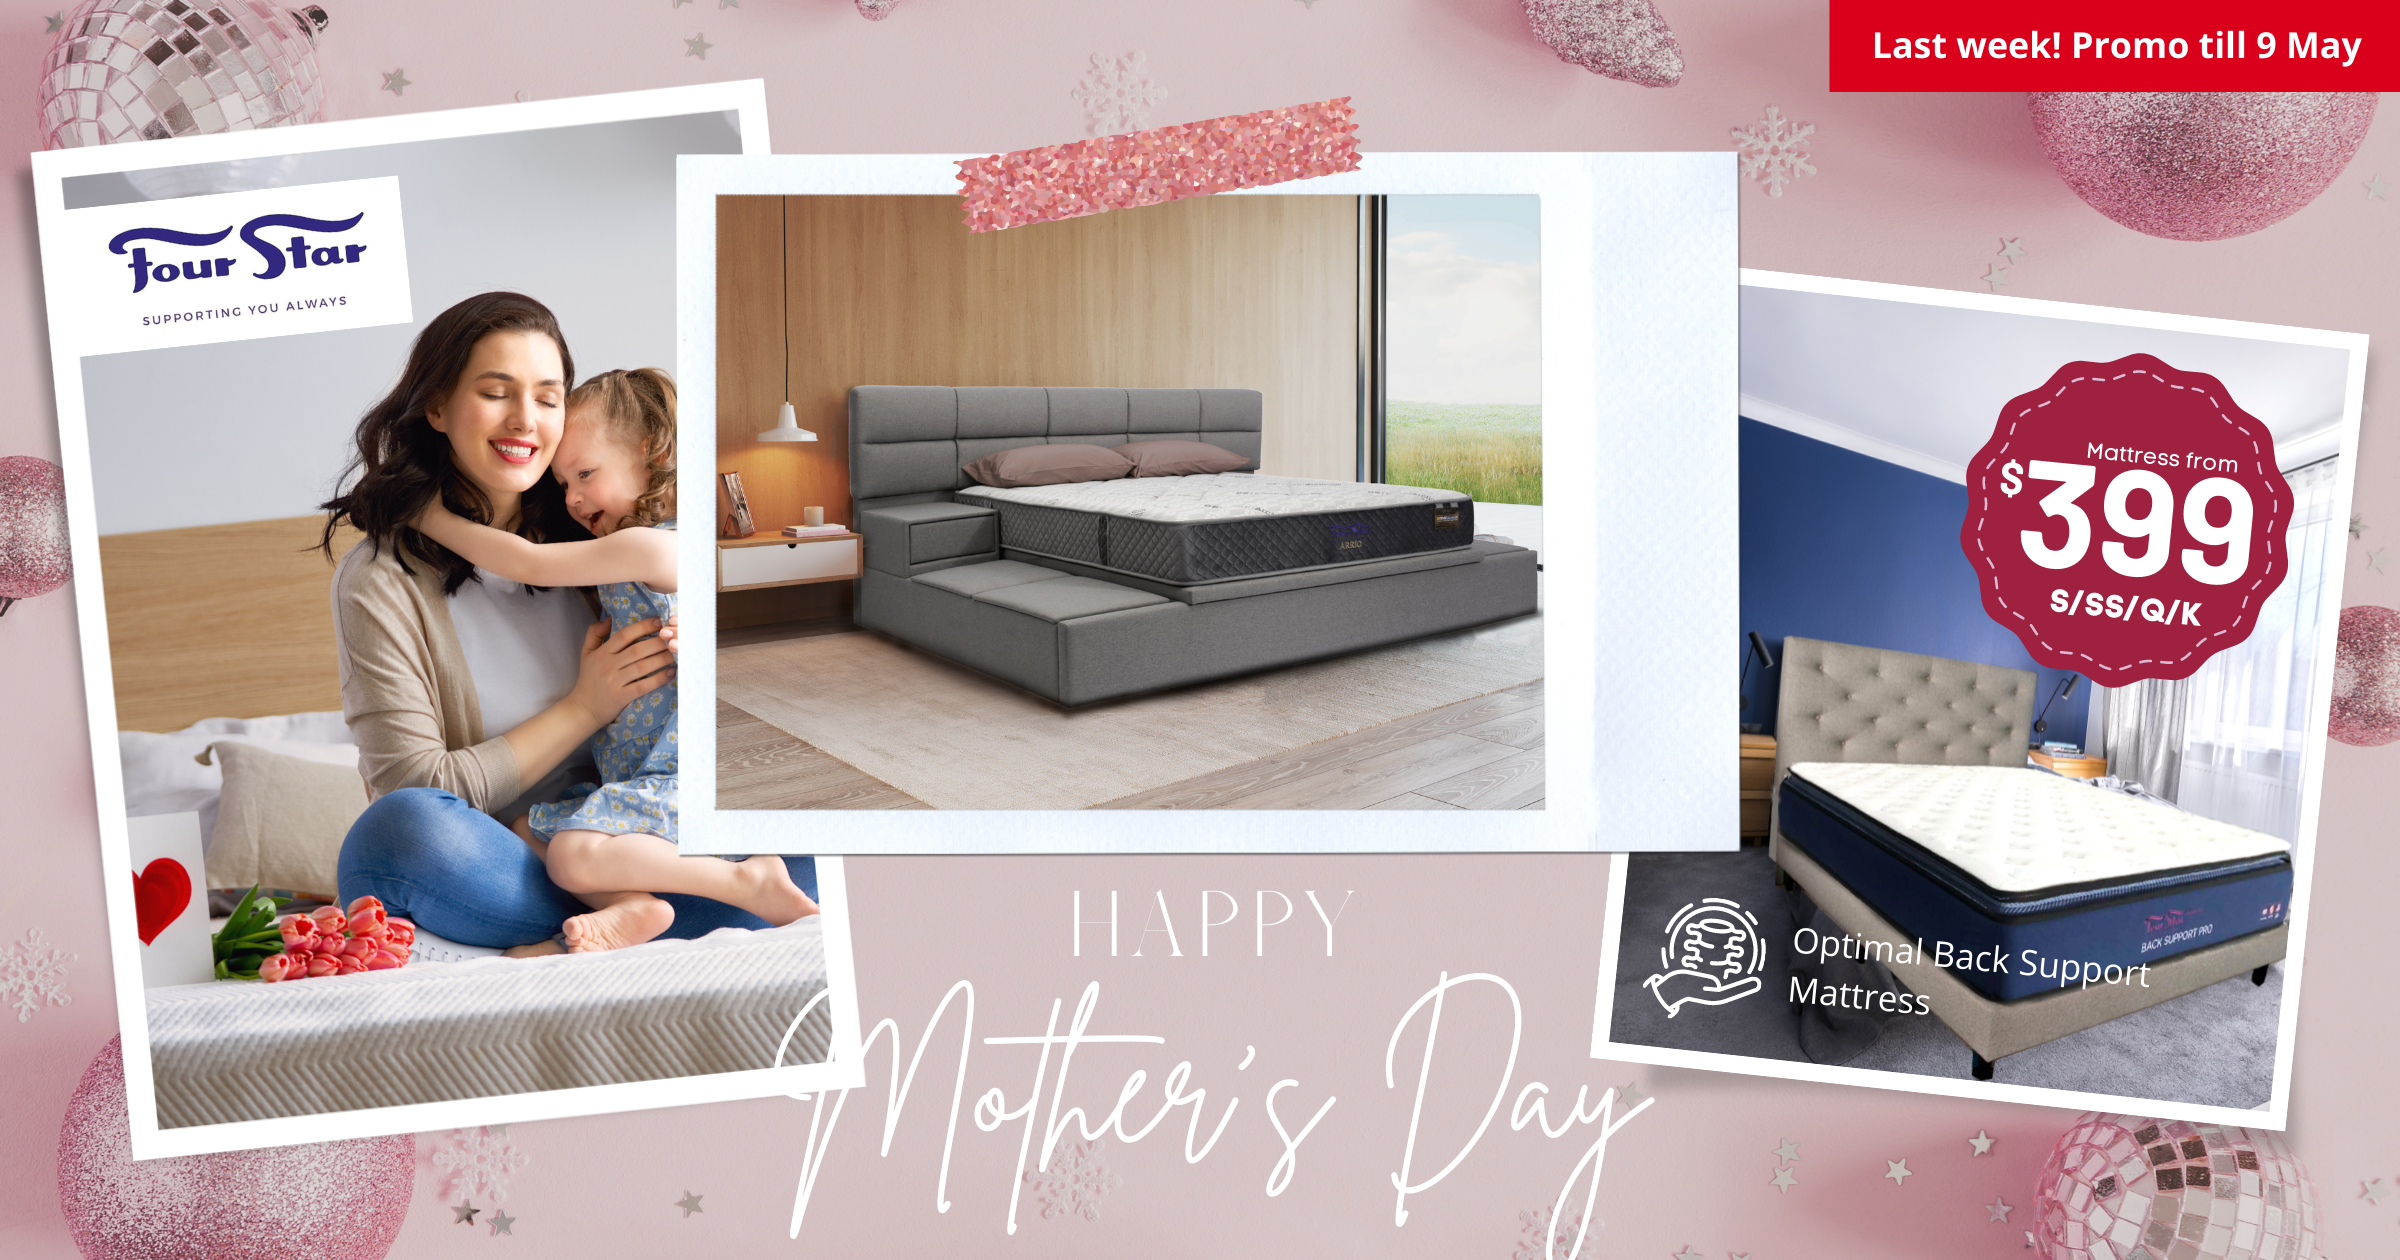 Four Star celebrates Mother's Day with 50% off storewide discount on premium mattresses, bed frames and more (6 - 9 May 21)